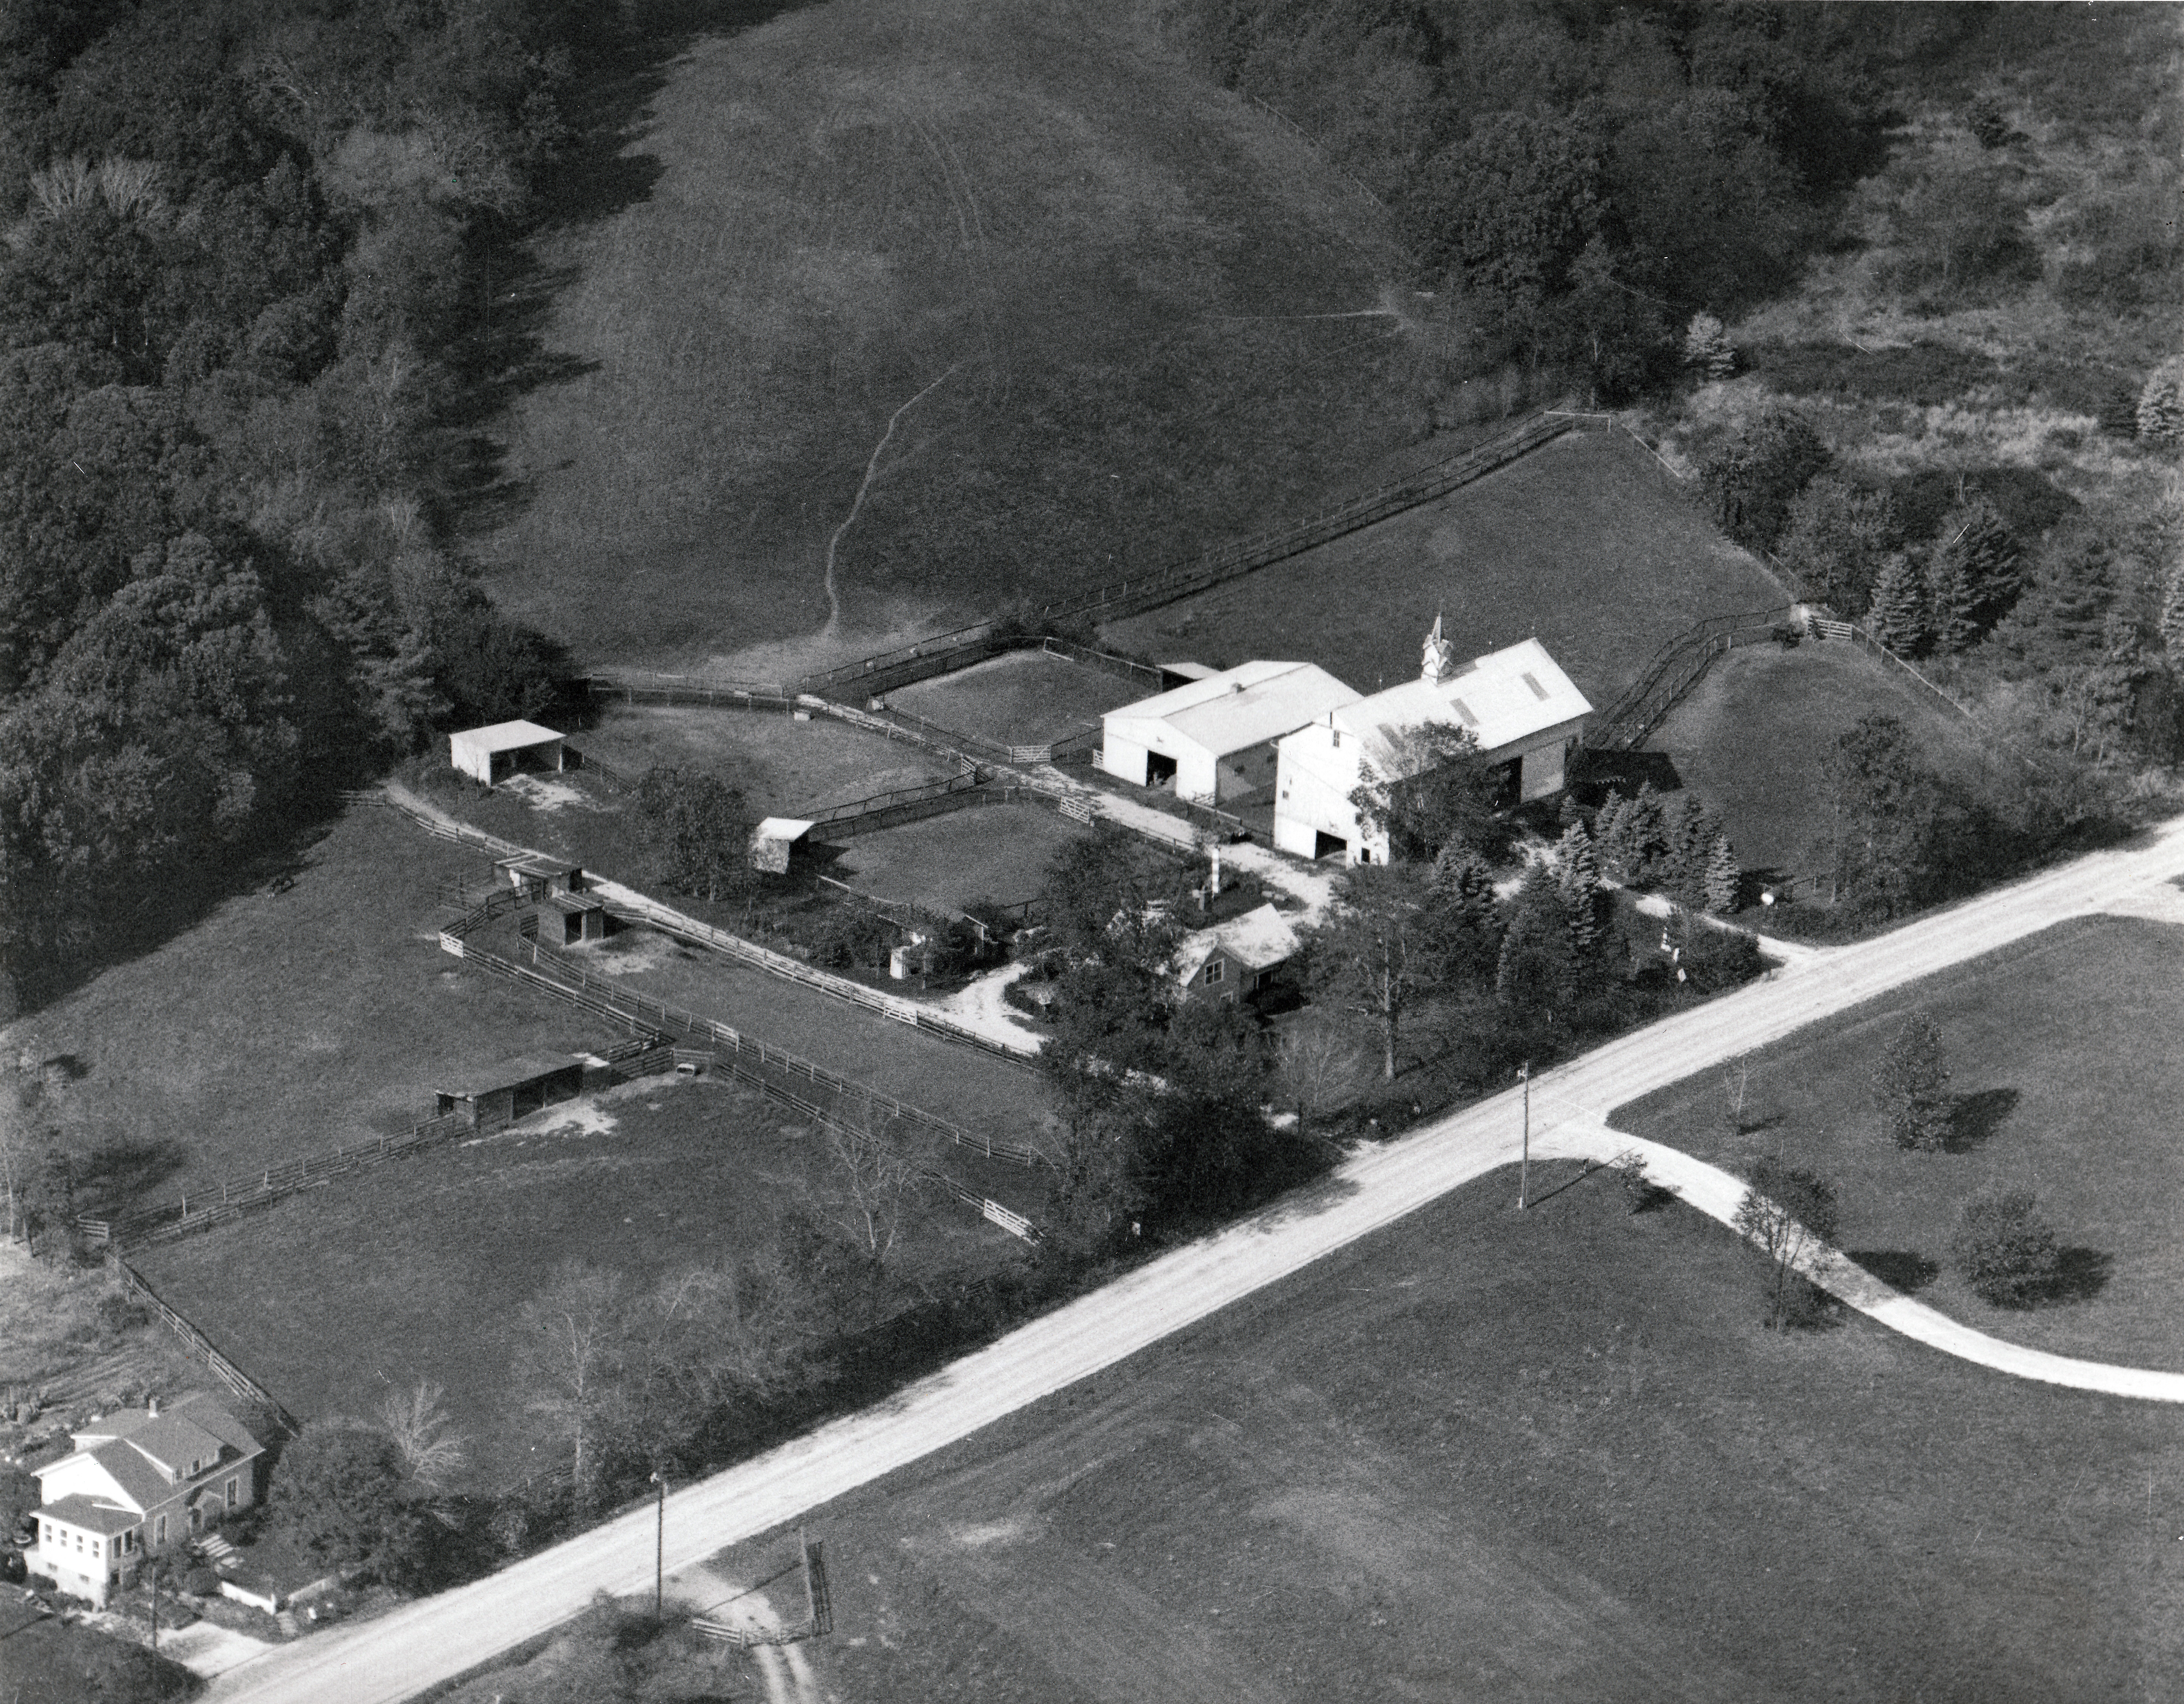 Another aerial view of the farm taken in 1968. The Quicks sold their orchards and the trees were removed.